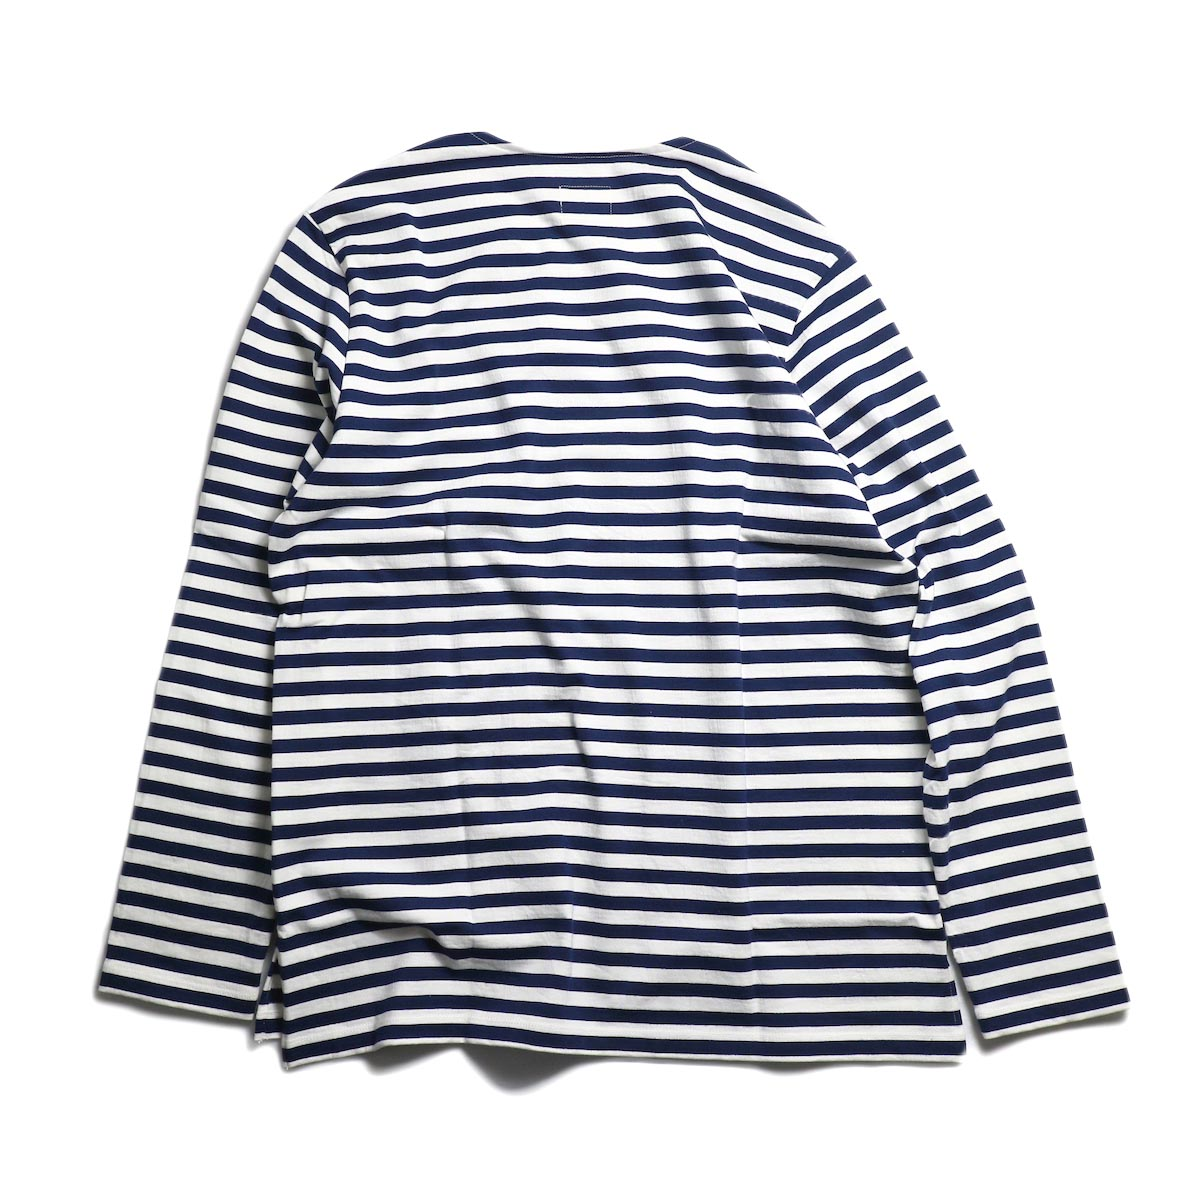 CURLY / Bright LS Border Tee -White/Navy 背面